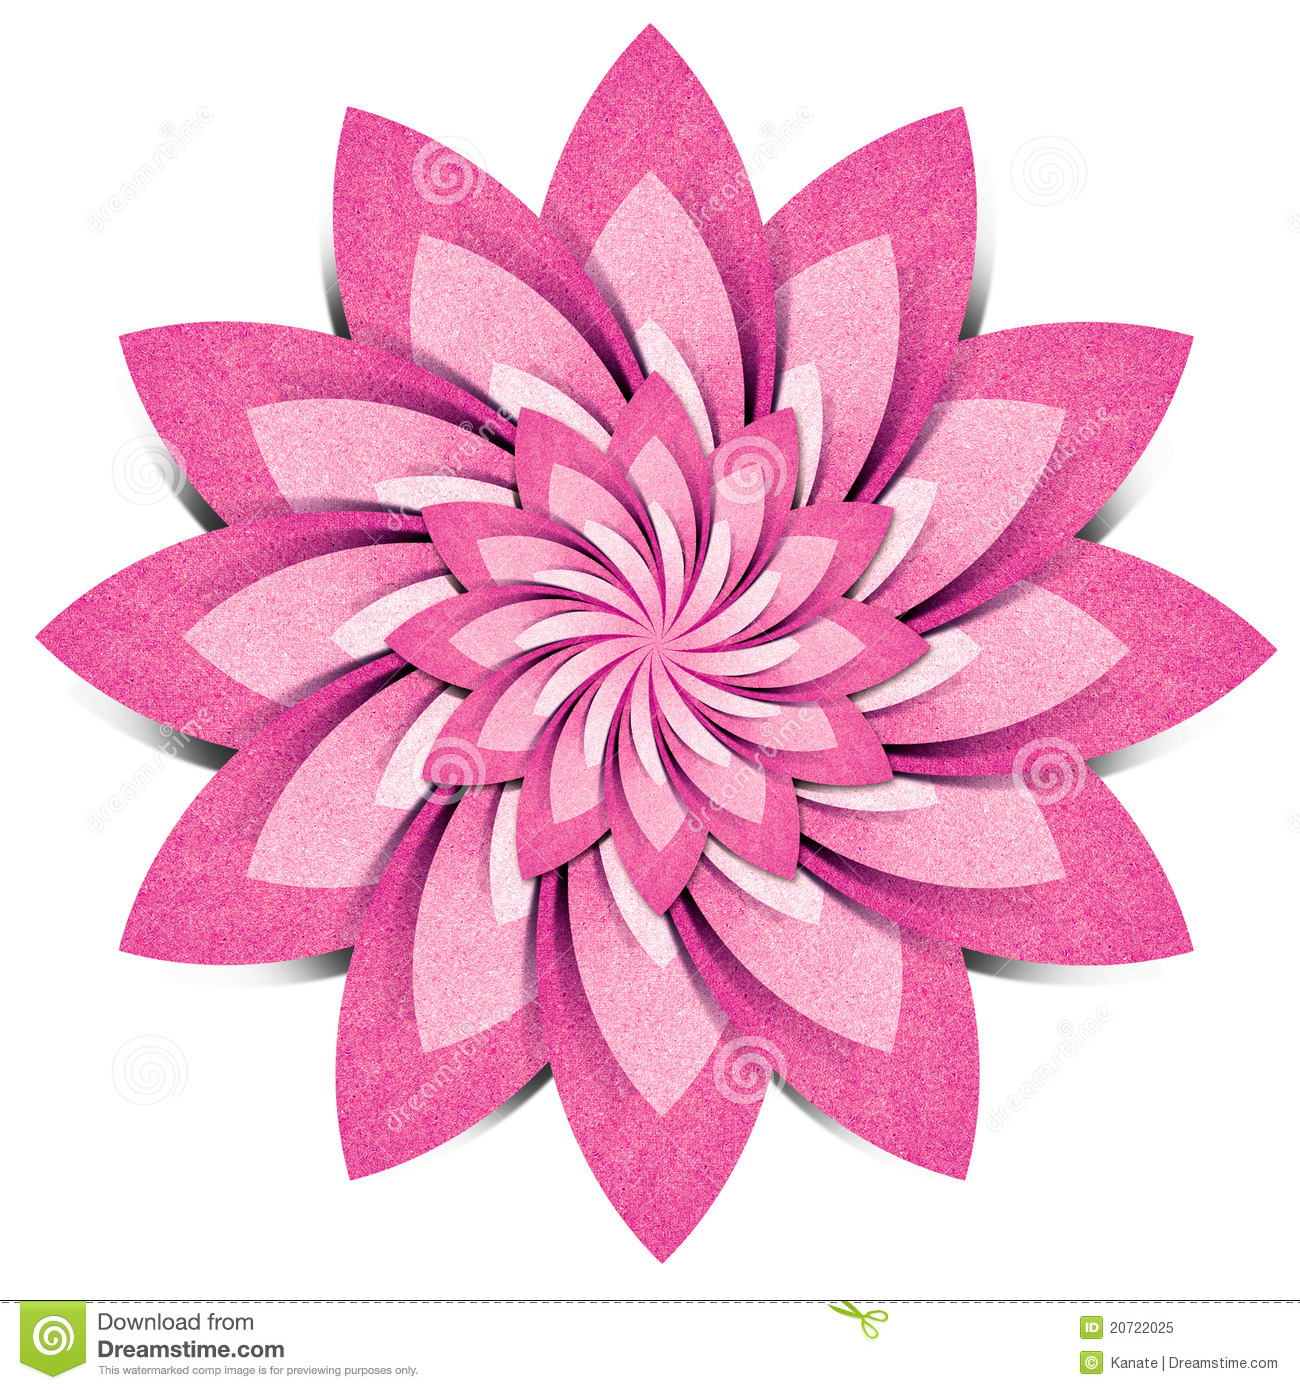 Flower Origami Recycled Paper Craft Stock Illustration